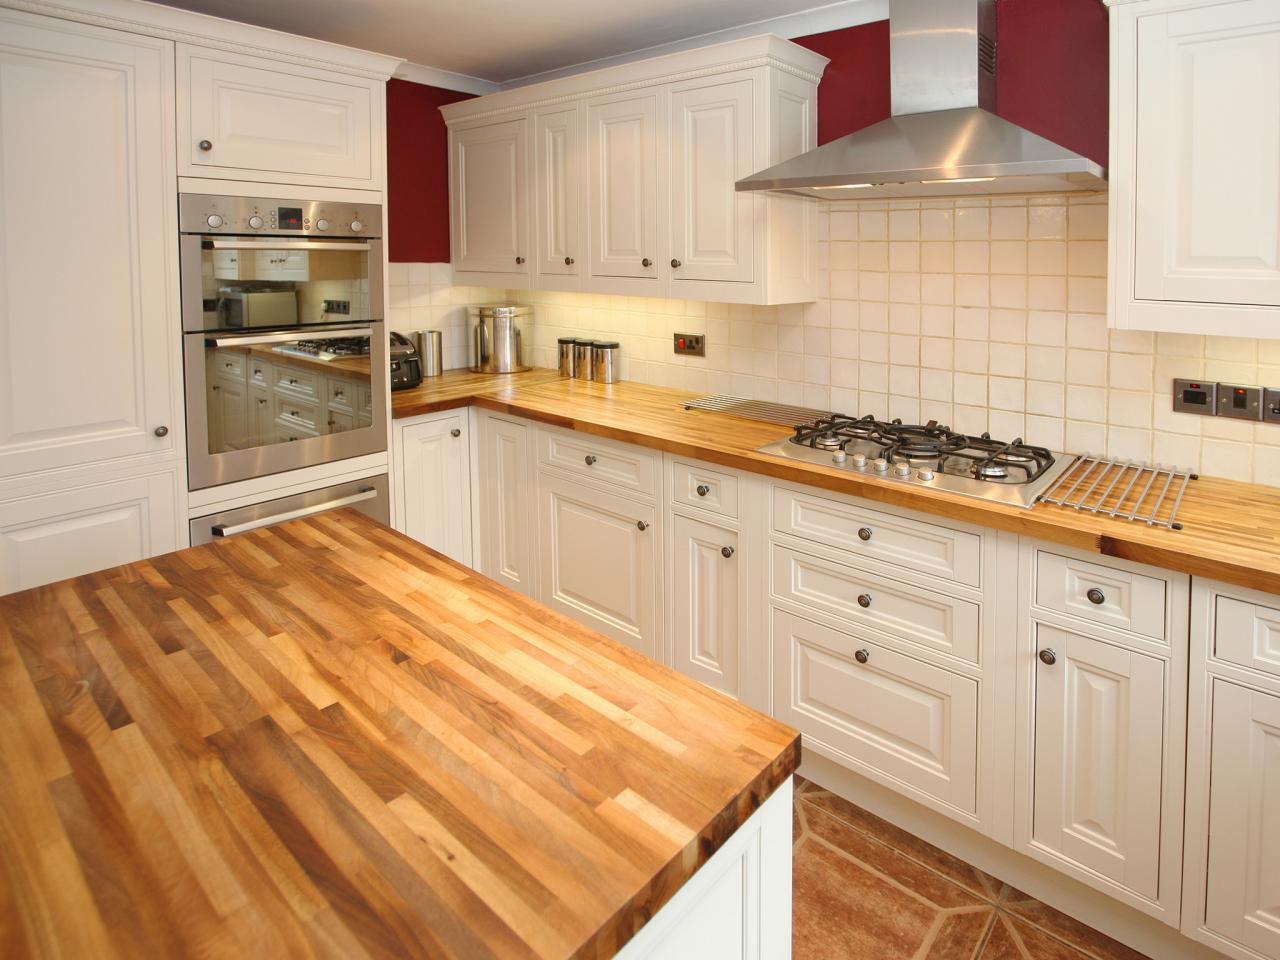 Fantastic Design Of The Kitchen Countertop Materials With White Wooden  Cabinets Added With Brown Wooden Countertops